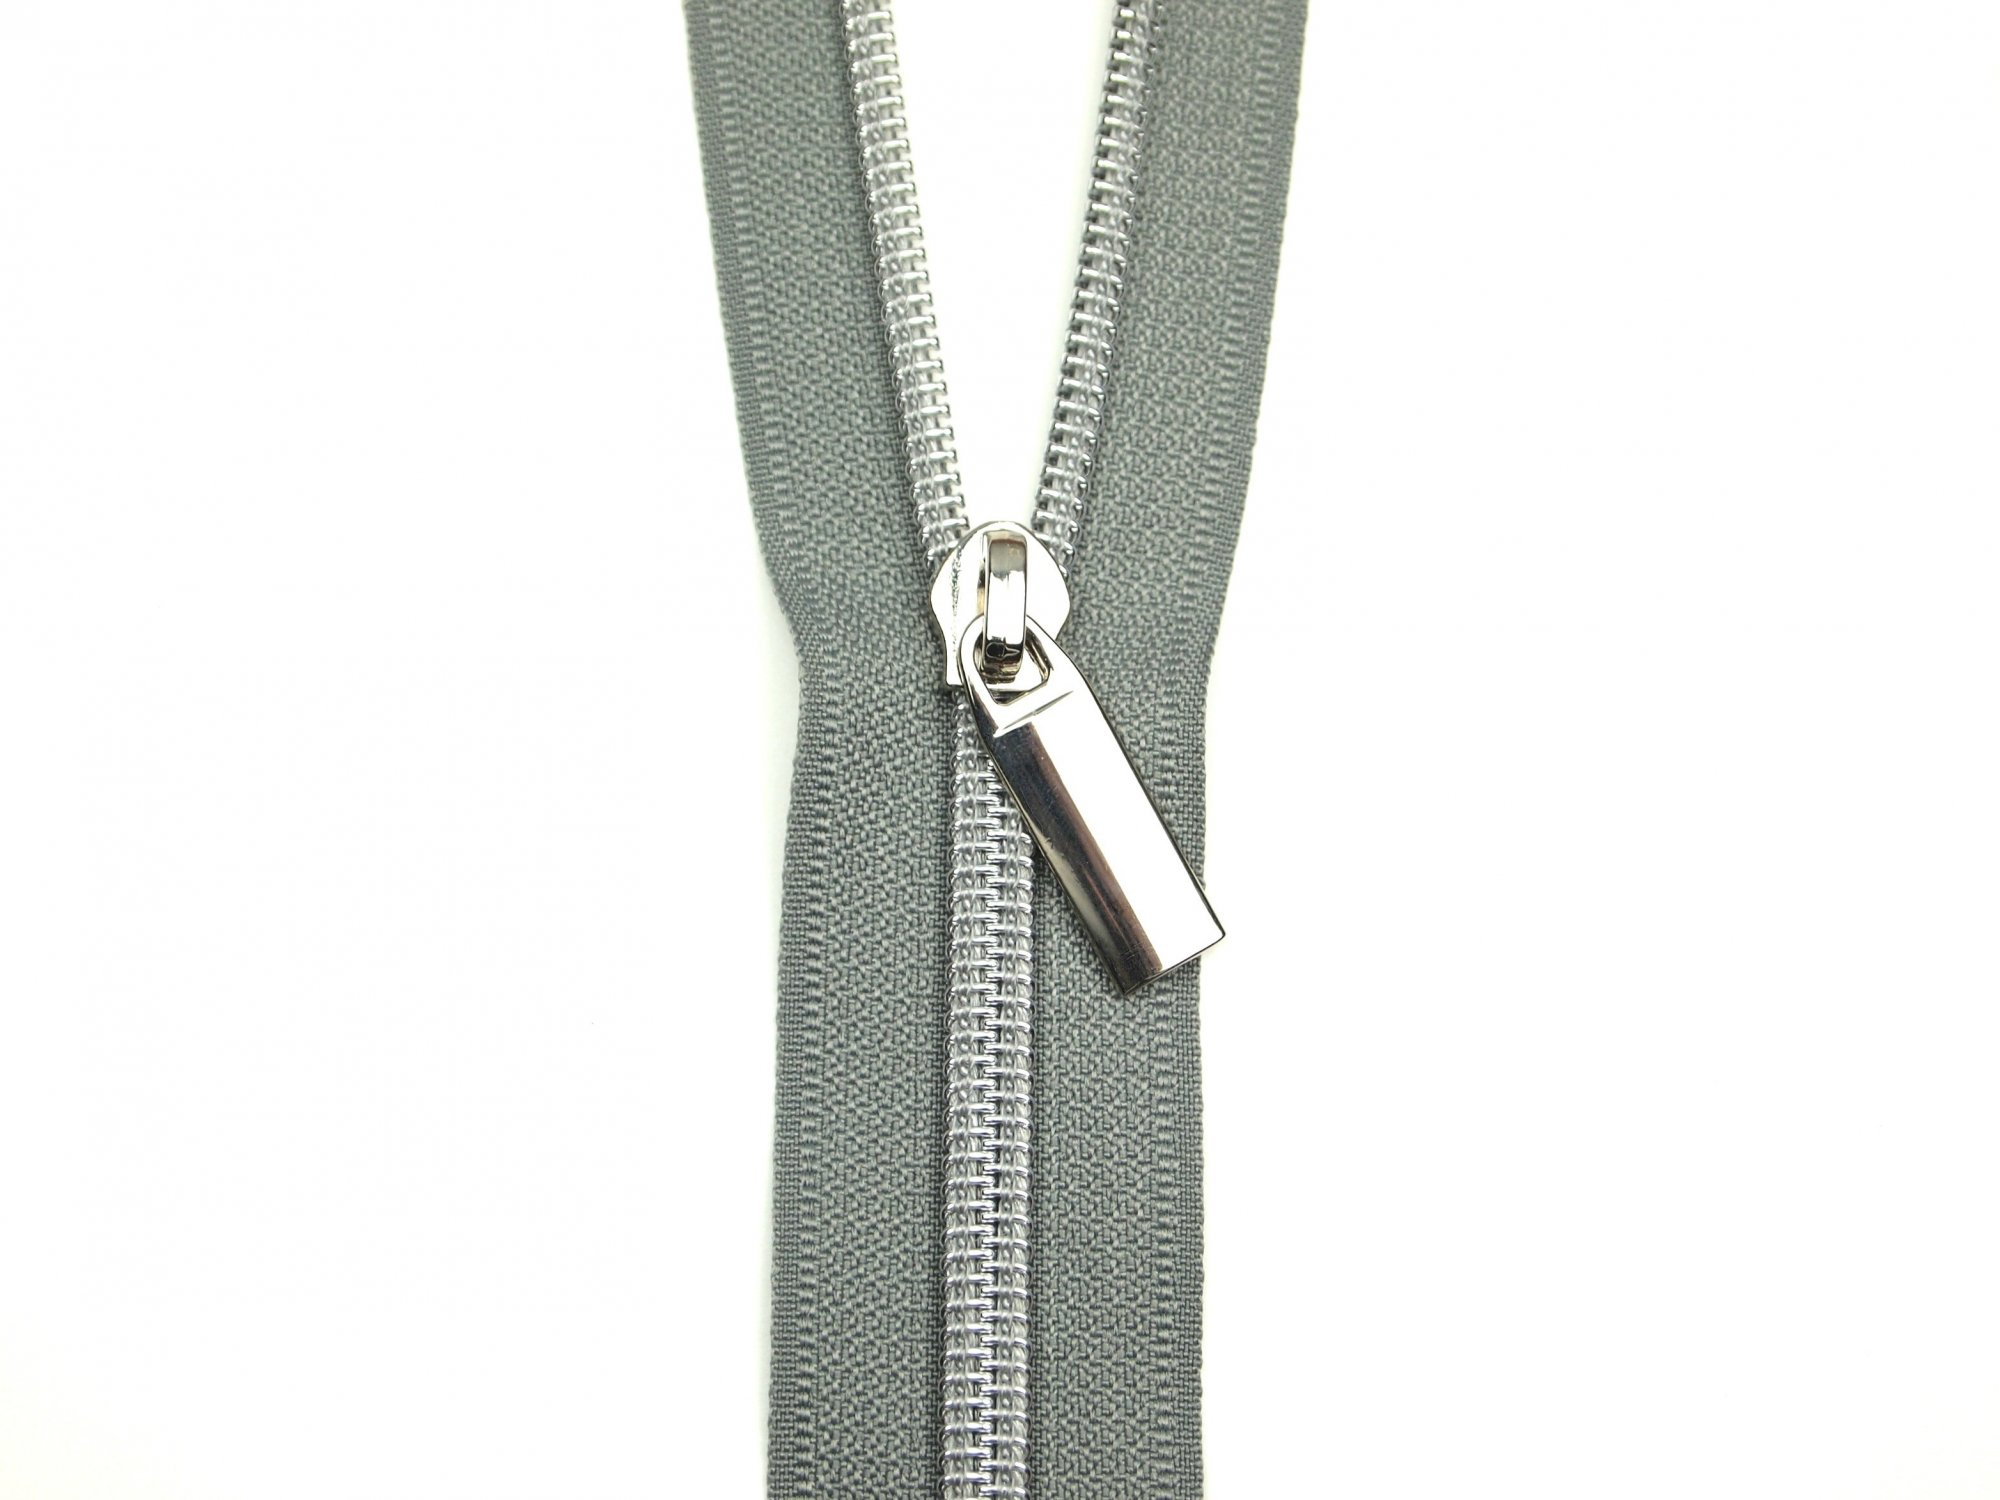 Zipper by the yard GreyTape Nickel coil